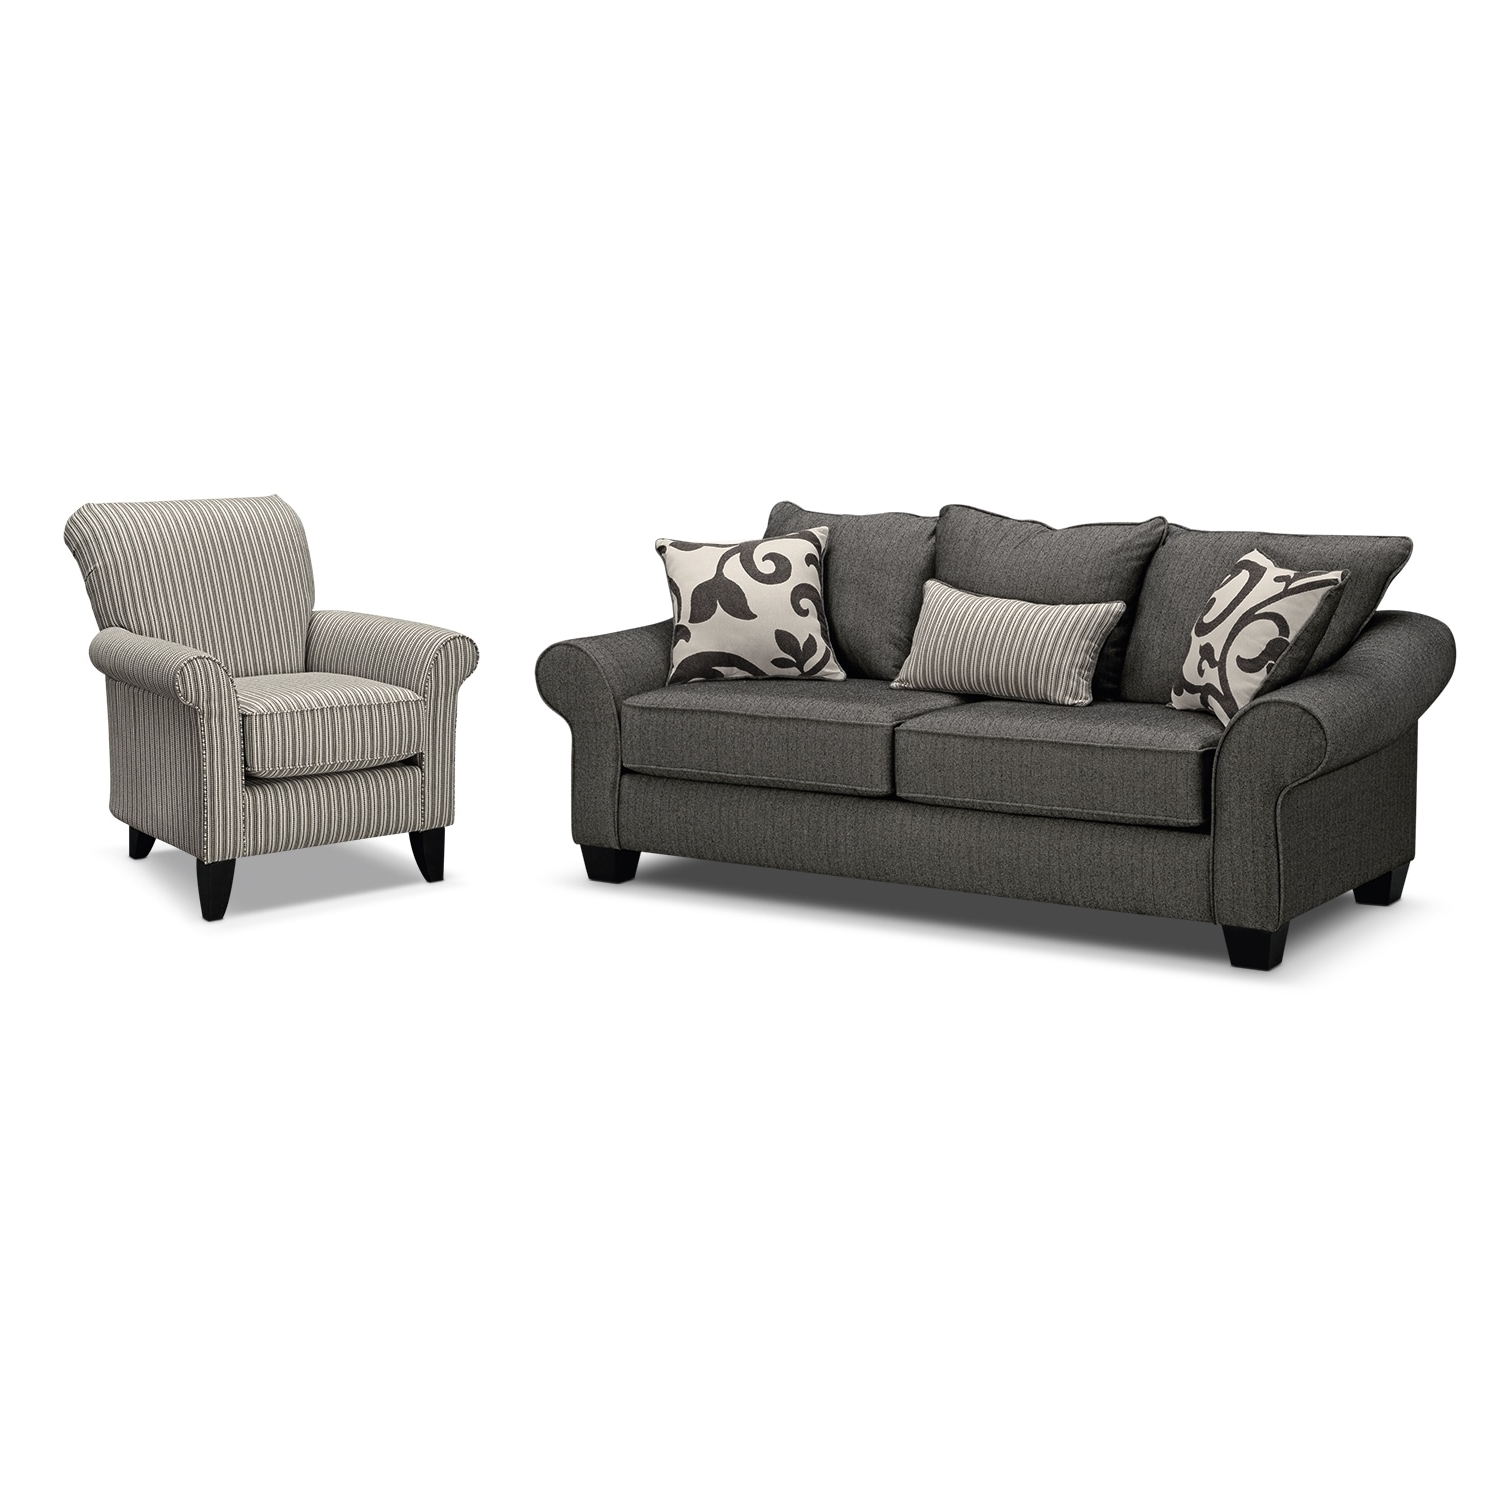 Colette Sofa And Accent Chair Set – Gray (View 3 of 15)